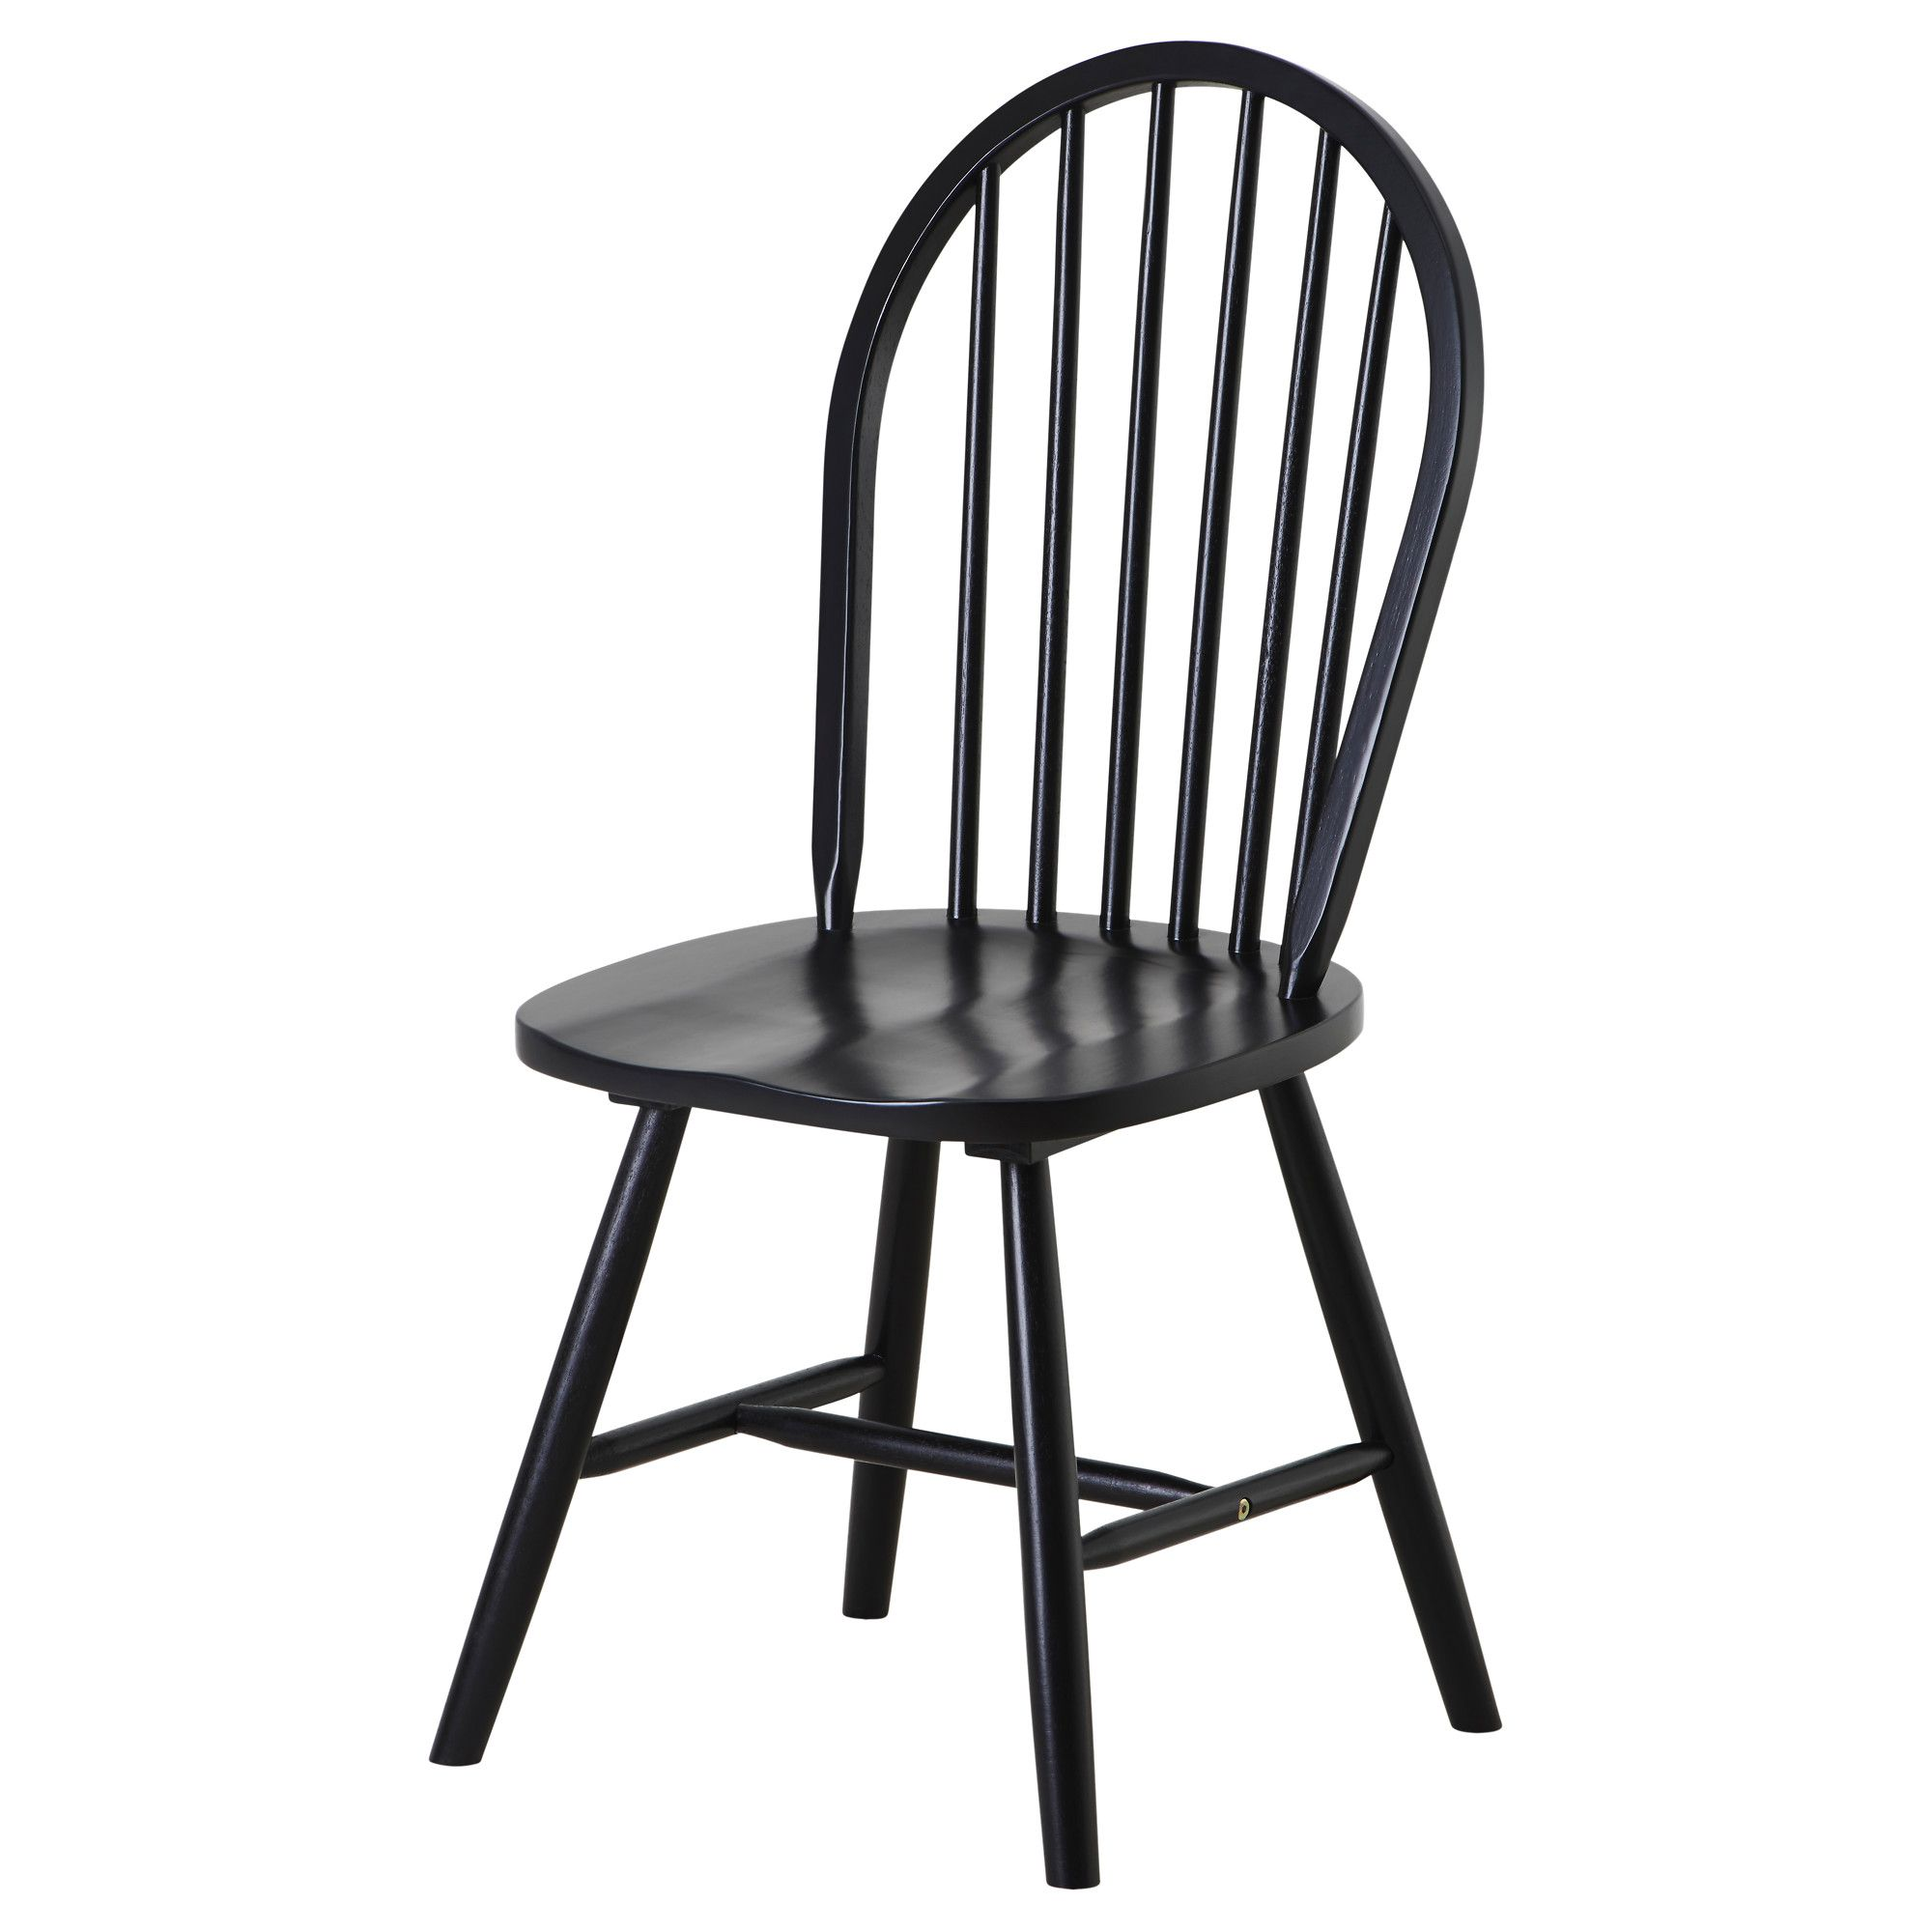 225 & IKEA - LIDINGBY Chair | kitchen + dining | Ikea dining chair ...